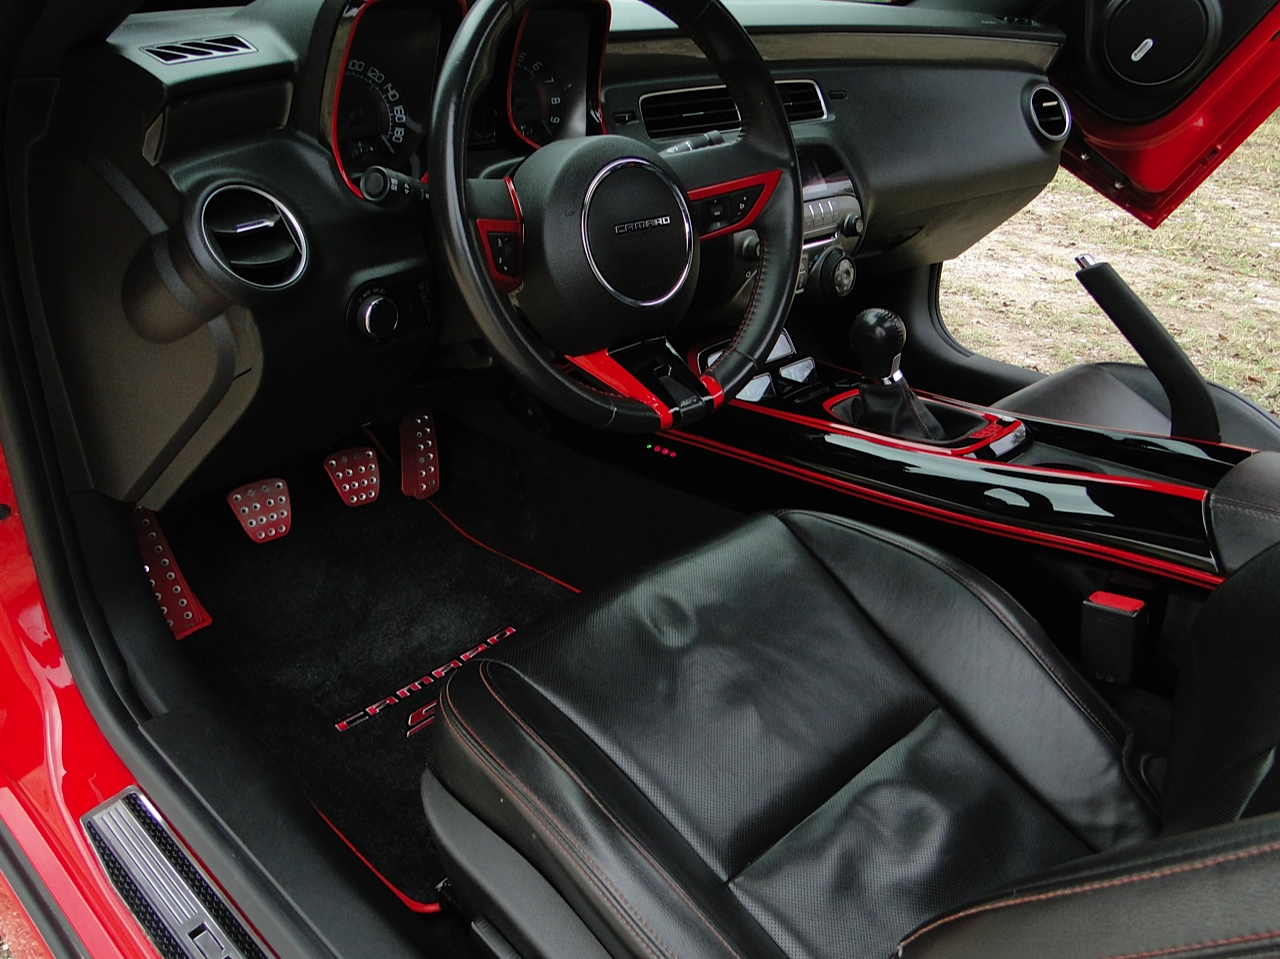 5Th Gen Camaro For Sale >> Custom Painted Smooth Center Console, gauge/shifter, steering and speedometer bezels - Camaro5 ...